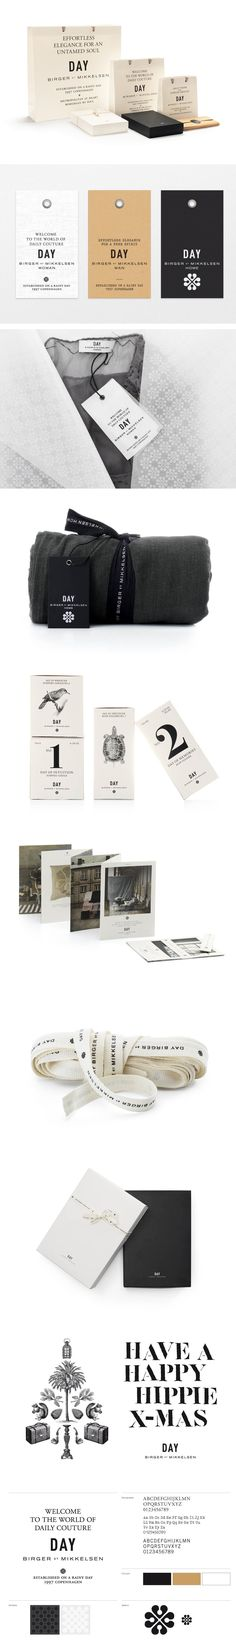 DAY Birger et Mikkelsen branding by BAS